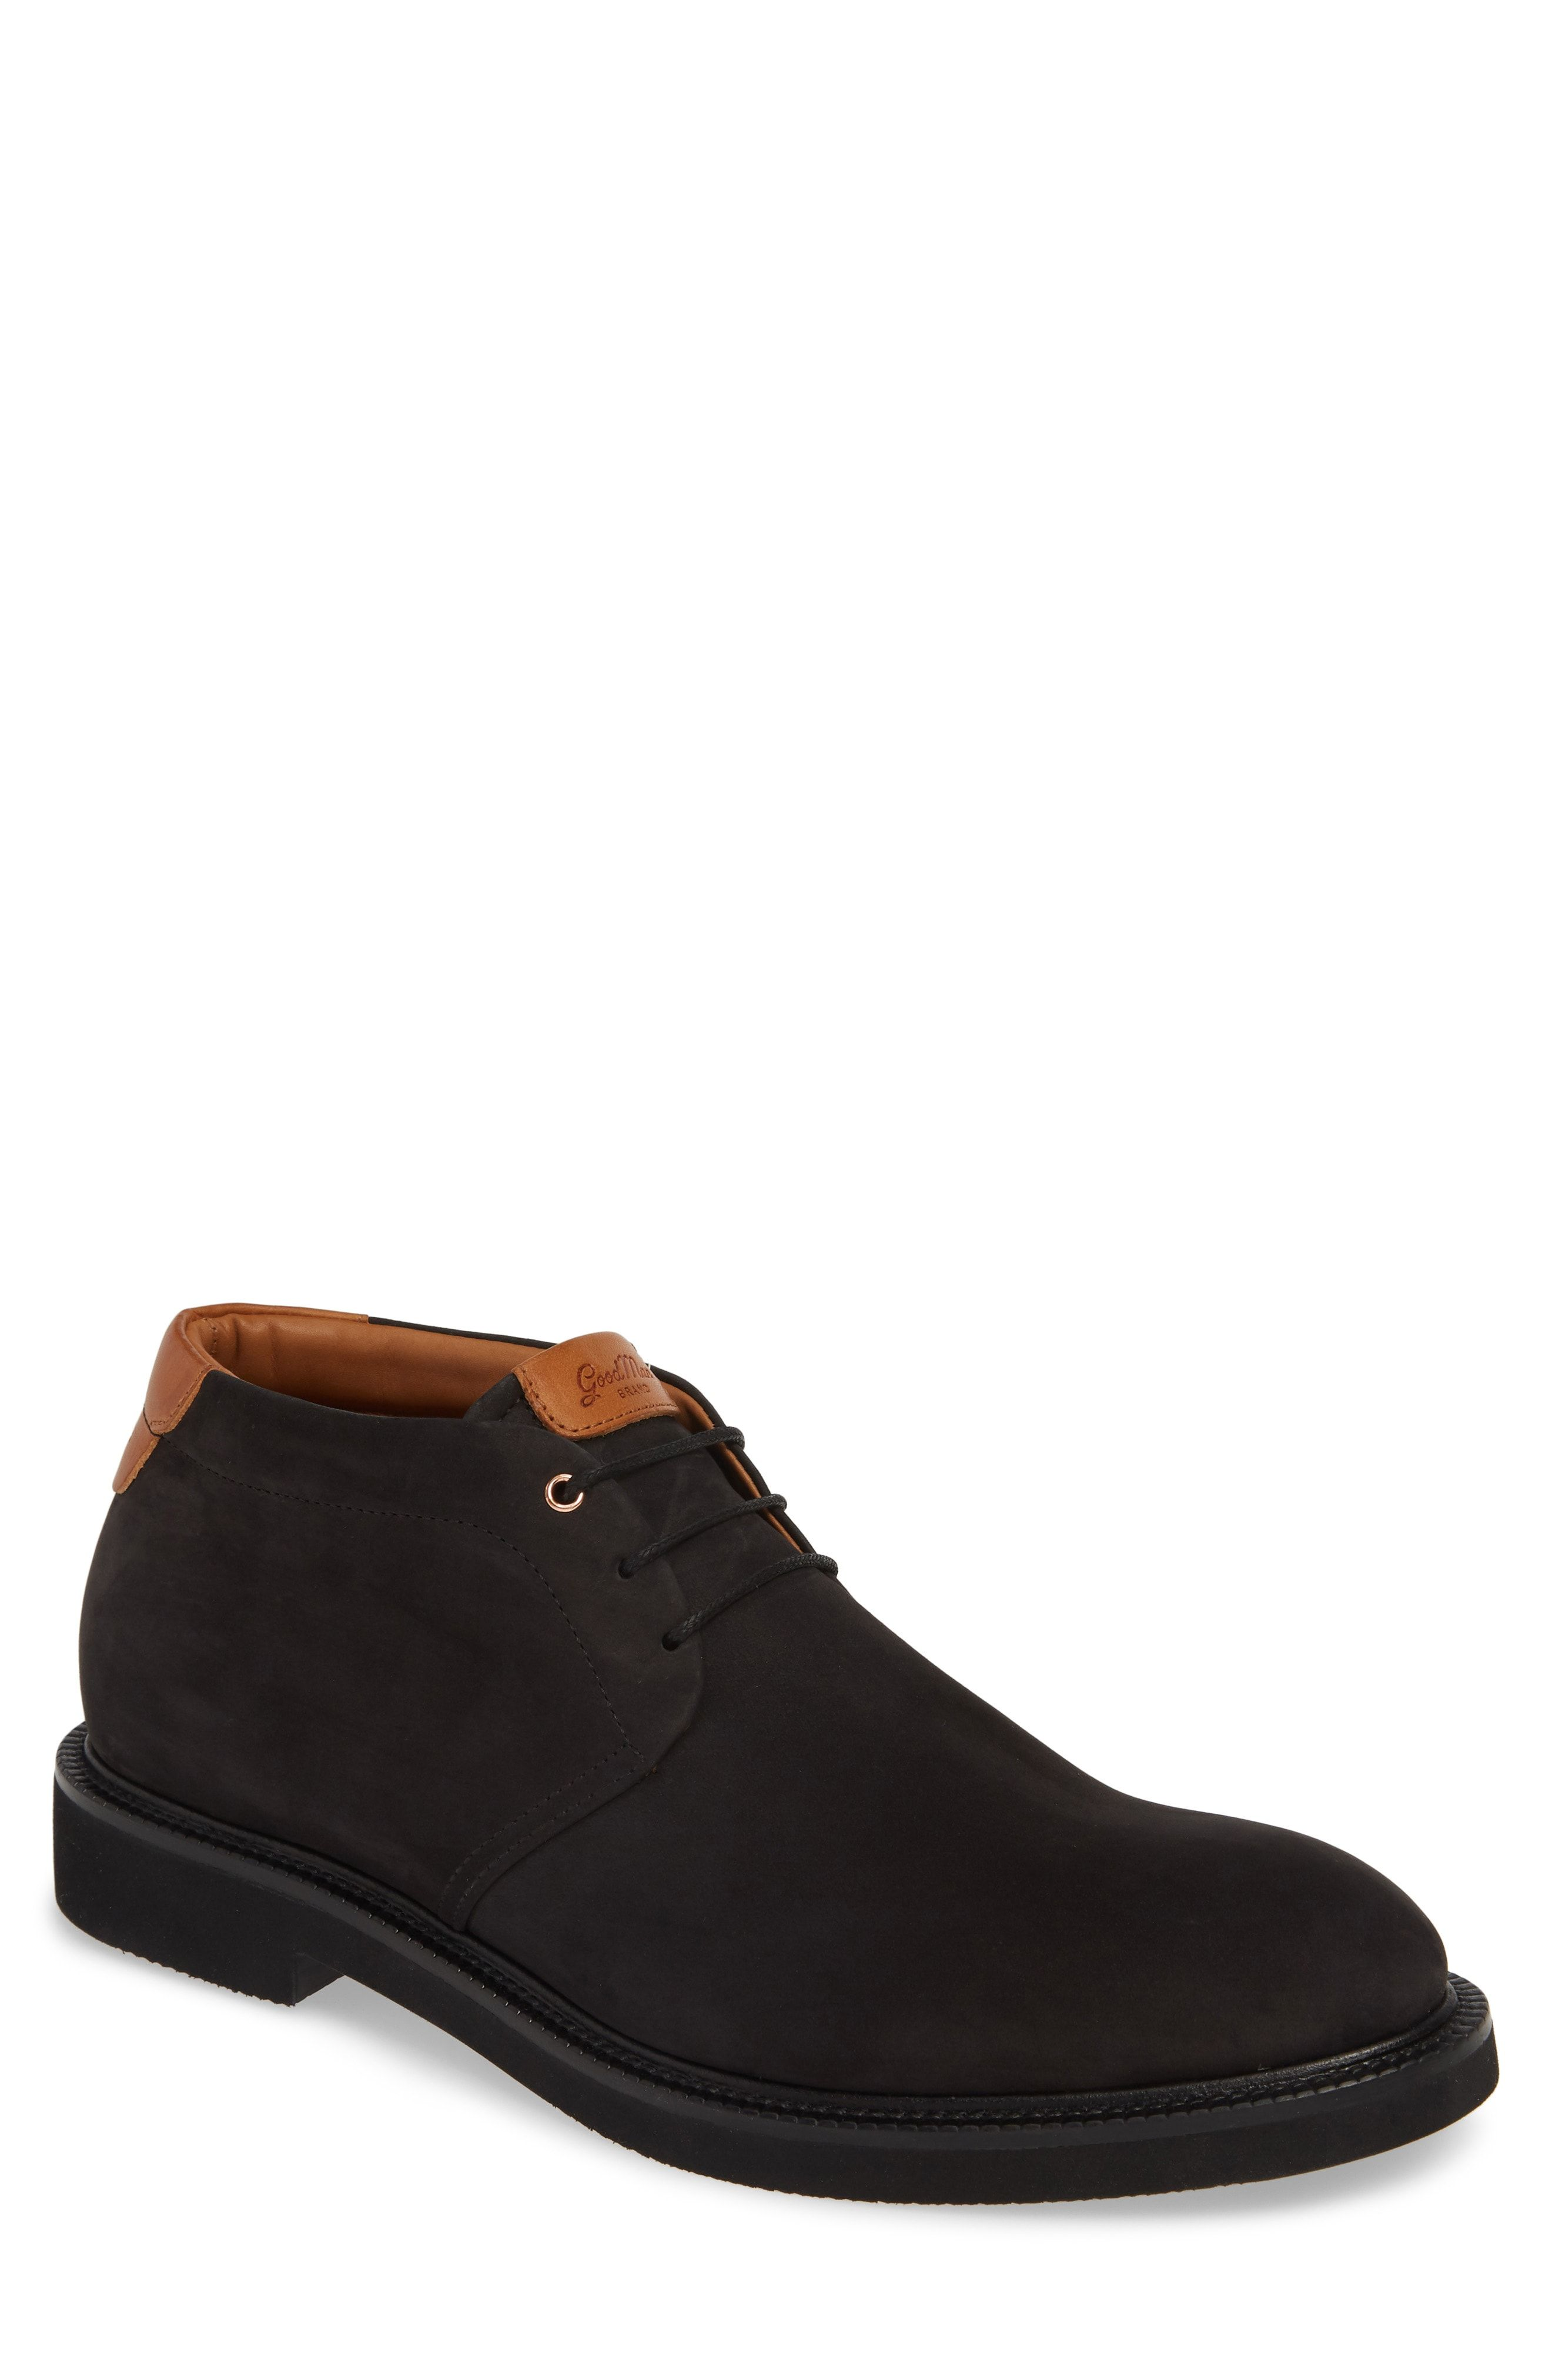 24 Best Men S Casual Outfits Vintagetopia: Work Wear Chukka Boot In Black / Vachetta